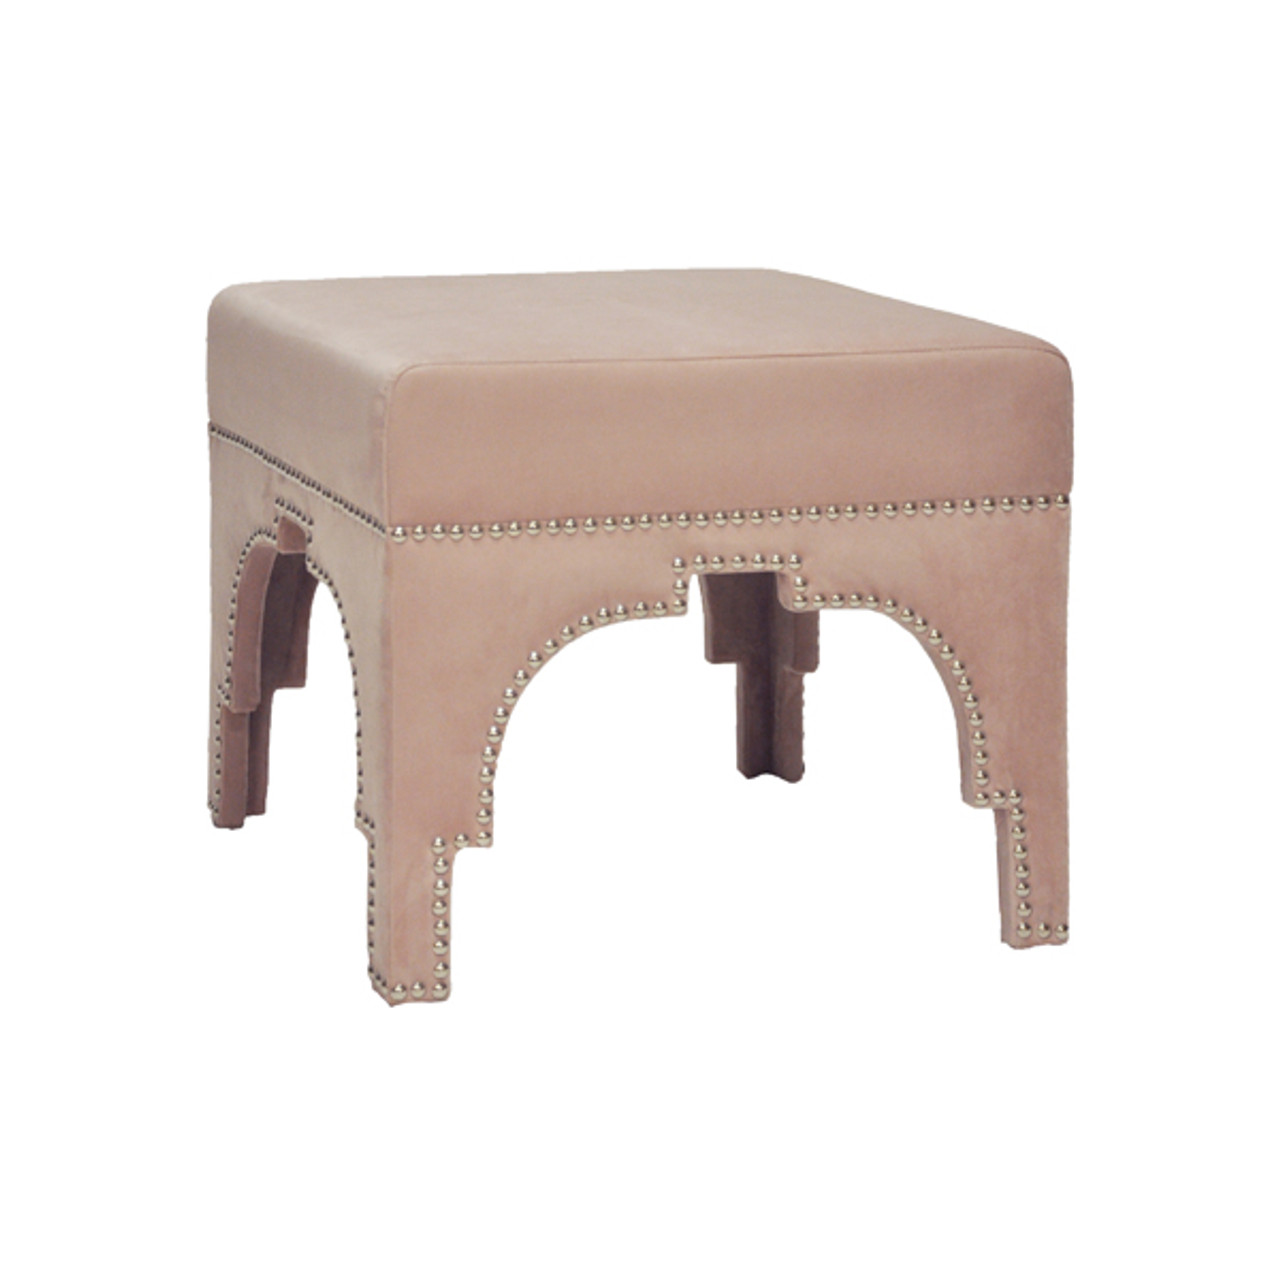 Searching for a Small Console Table for Bedroom? Browse the Premium Selection at Worlds Away